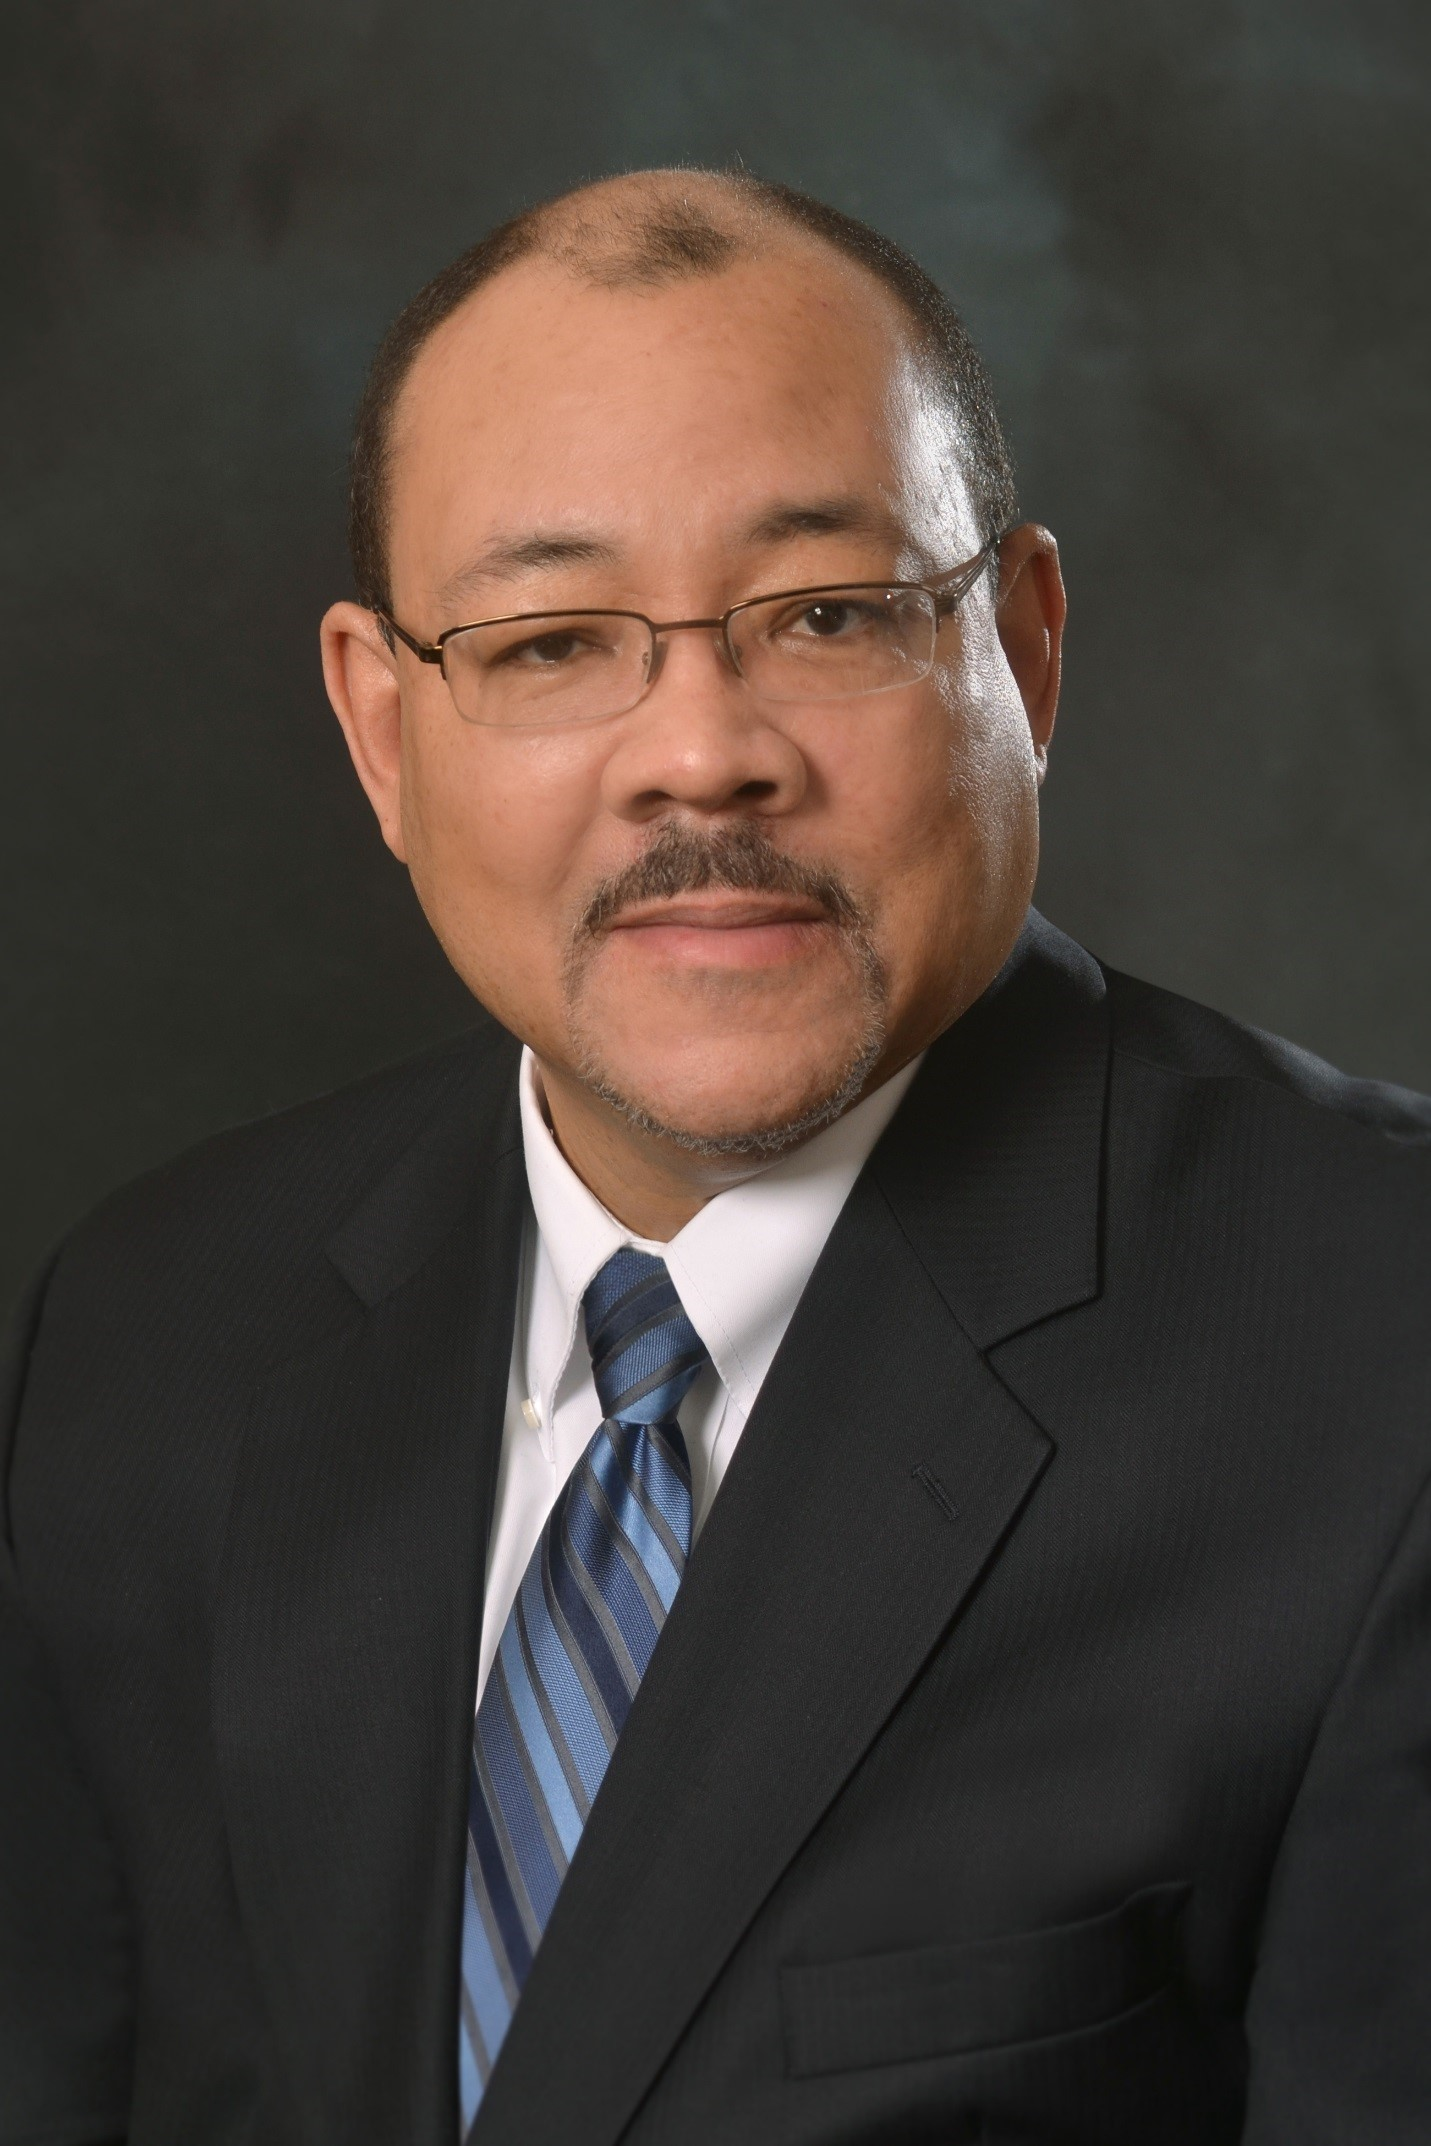 Akron Public Schools Superintendent David James is the Commencement speaker for the advanced degree ceremony at Kent State University on Dec. 15.